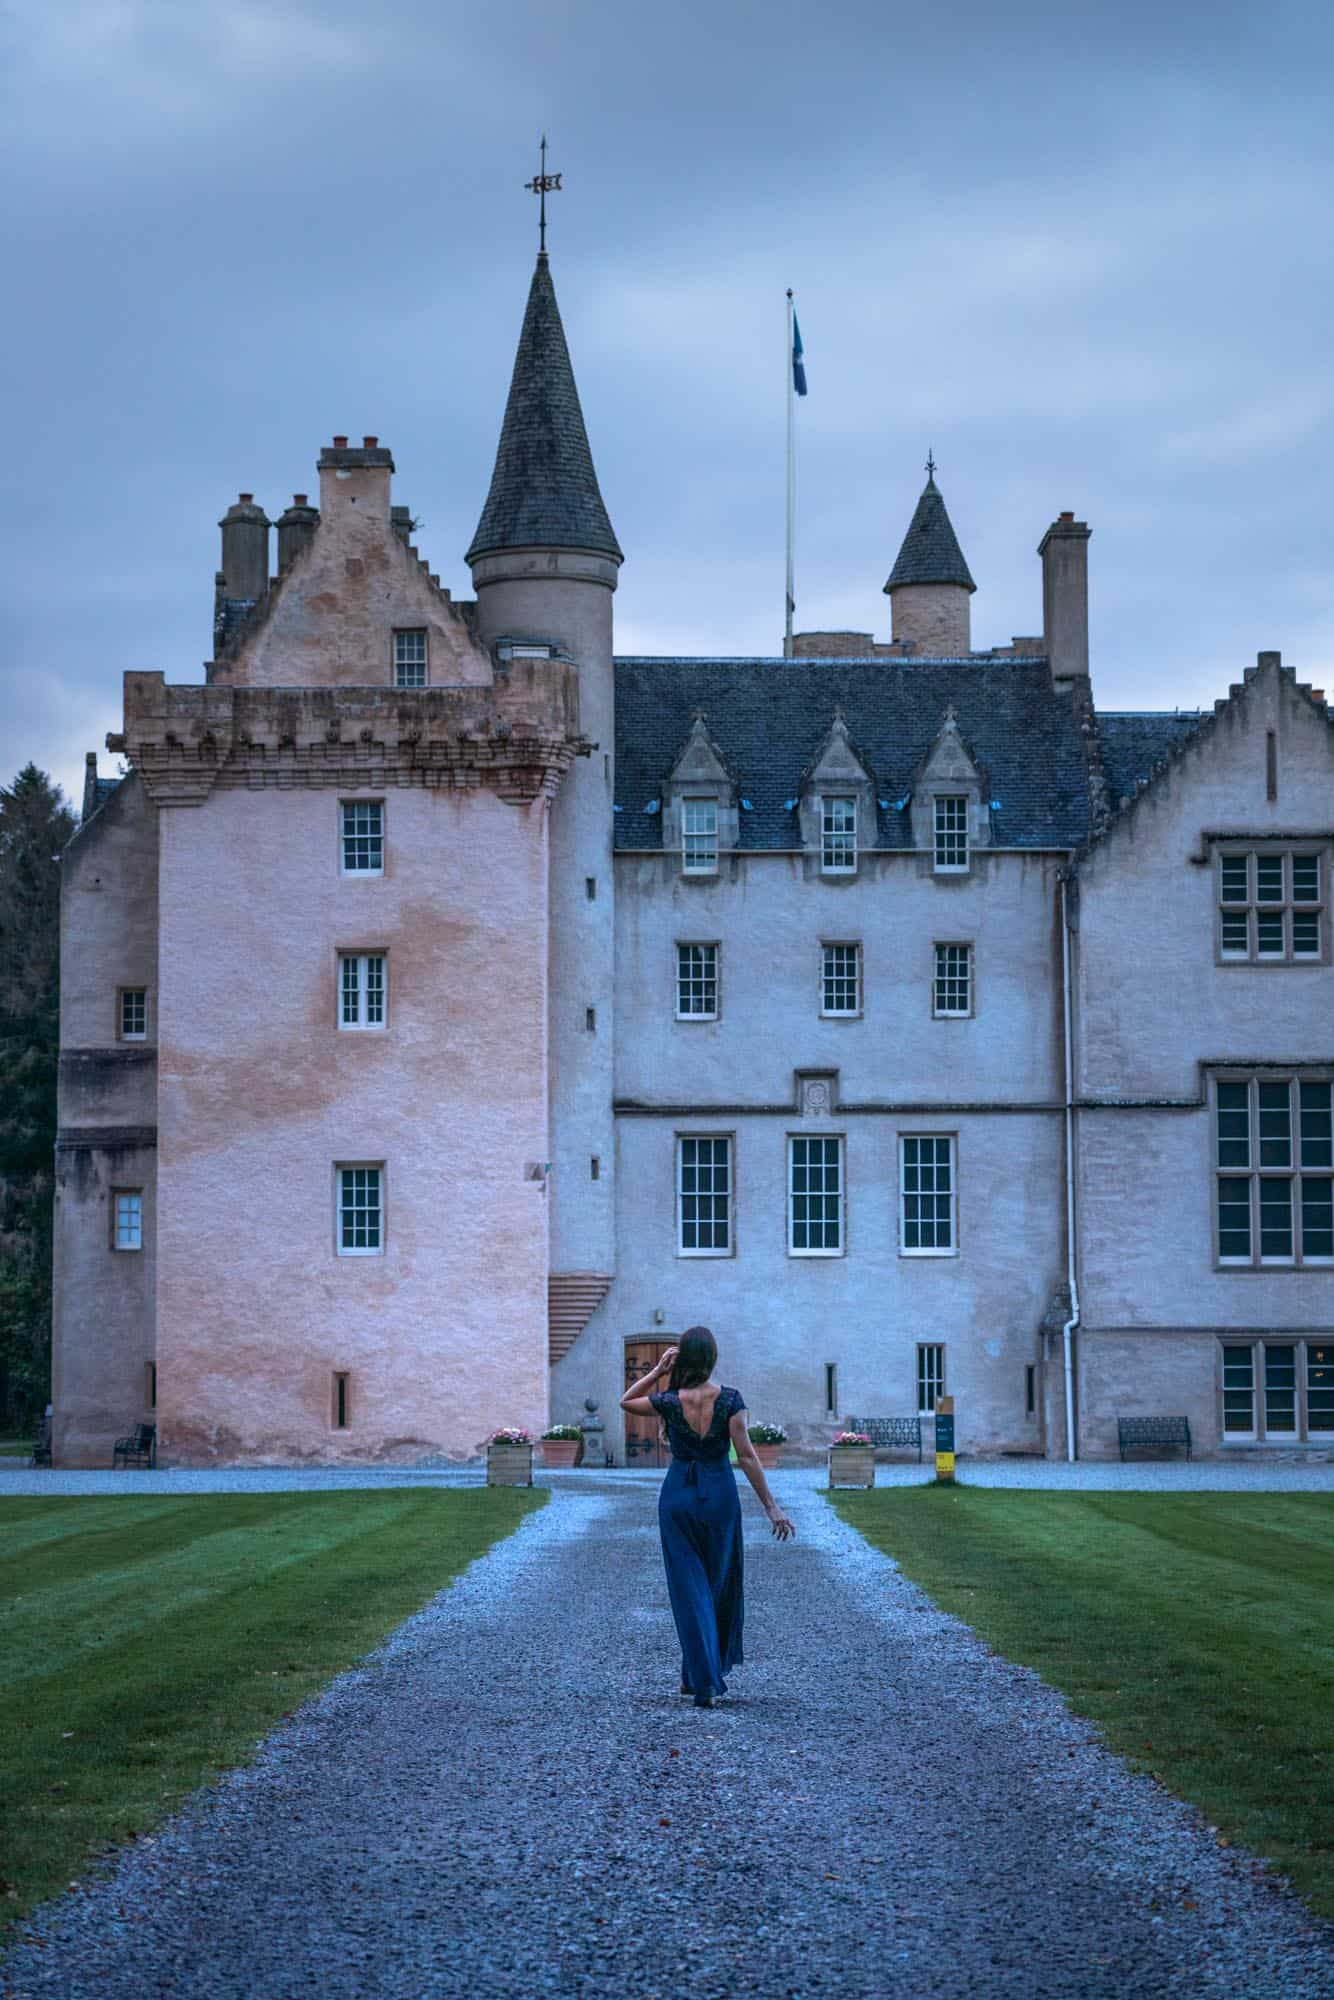 Brodie Castle will be on your 10 days in Scotland course, and has a beauty and quirkiness in its simplicity.